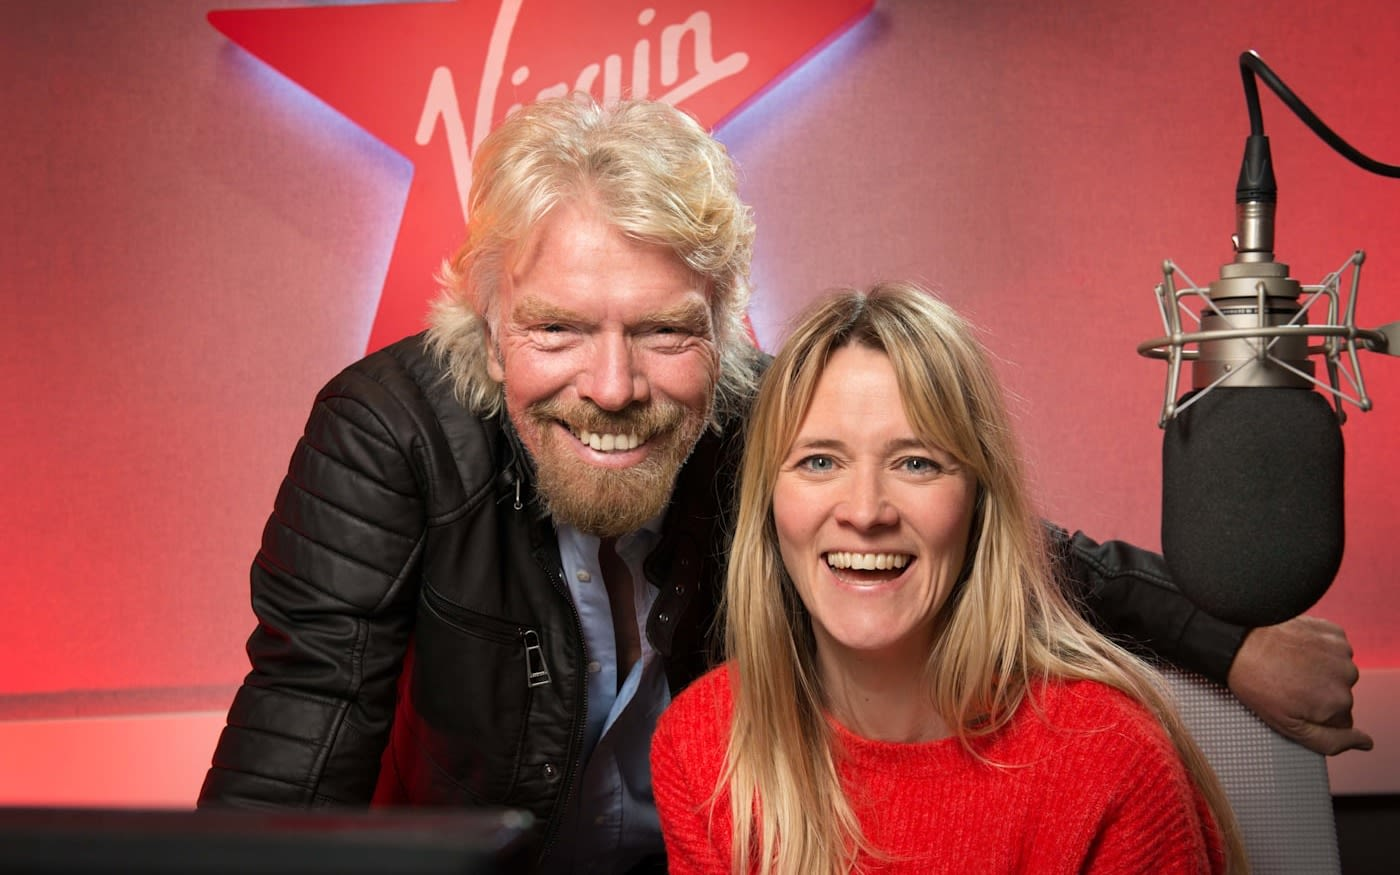 Richard Branson and Edith Bowman in a radio studio